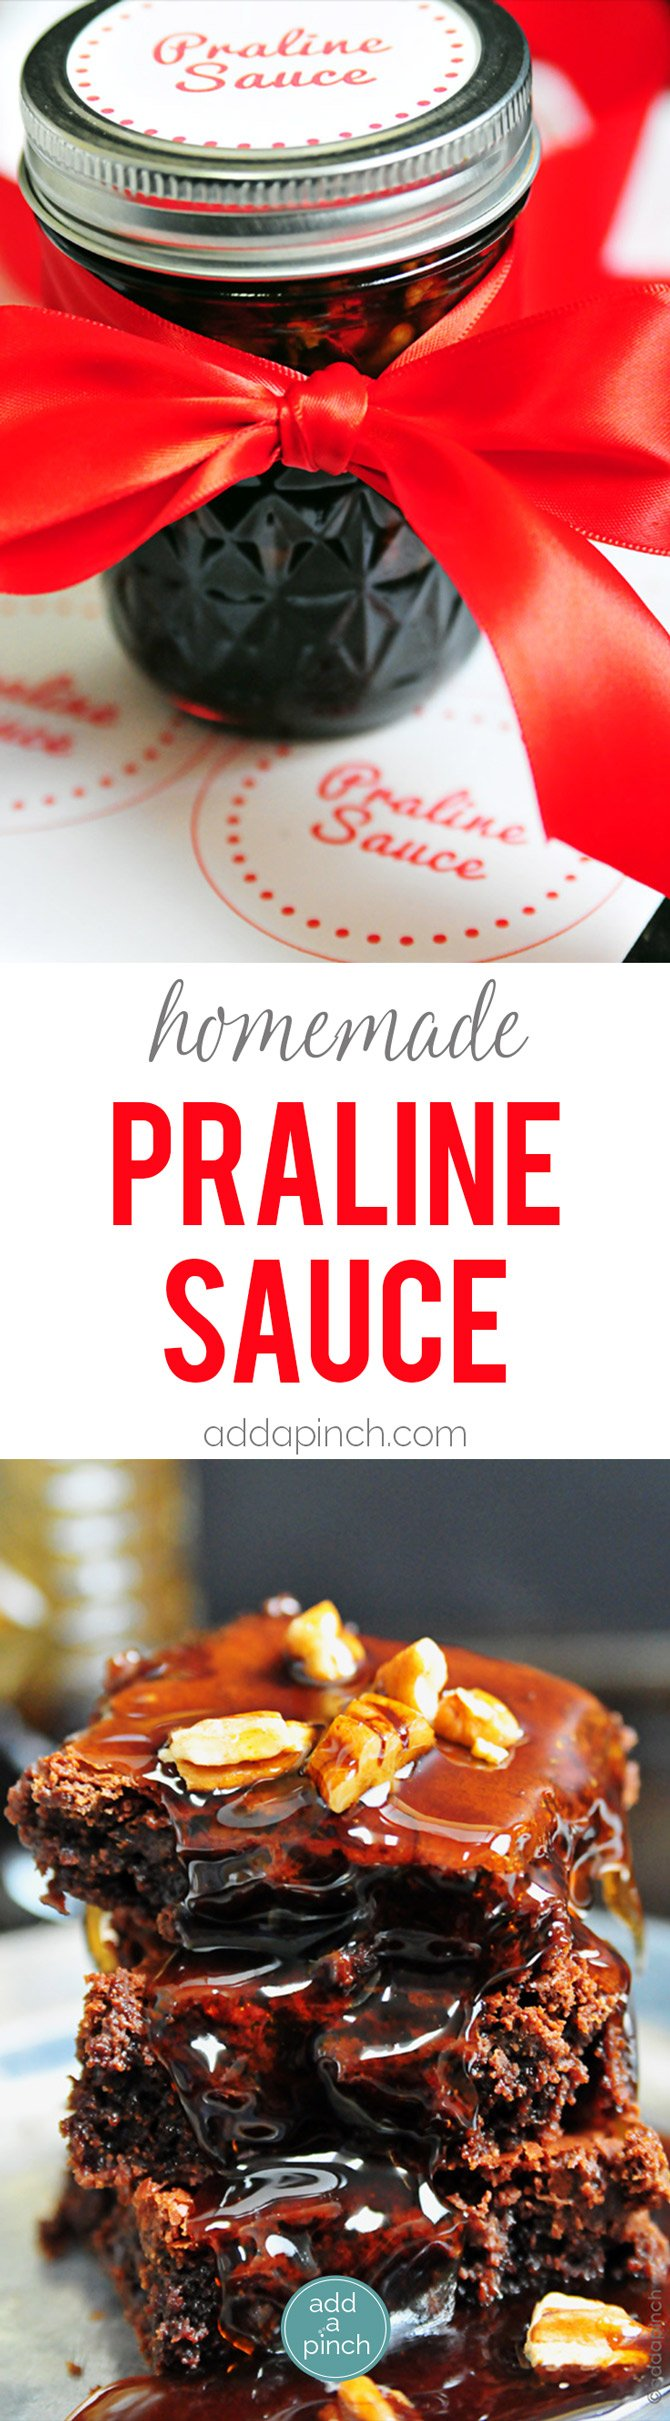 Homemade Praline Sauce - Praline Sauce is a classic Southern topping. Praline Sauce is delicious on top of ice cream, waffles, pancakes, or anywhere you need a little bit of sweetness. Makes a great gift! // addapinch.com